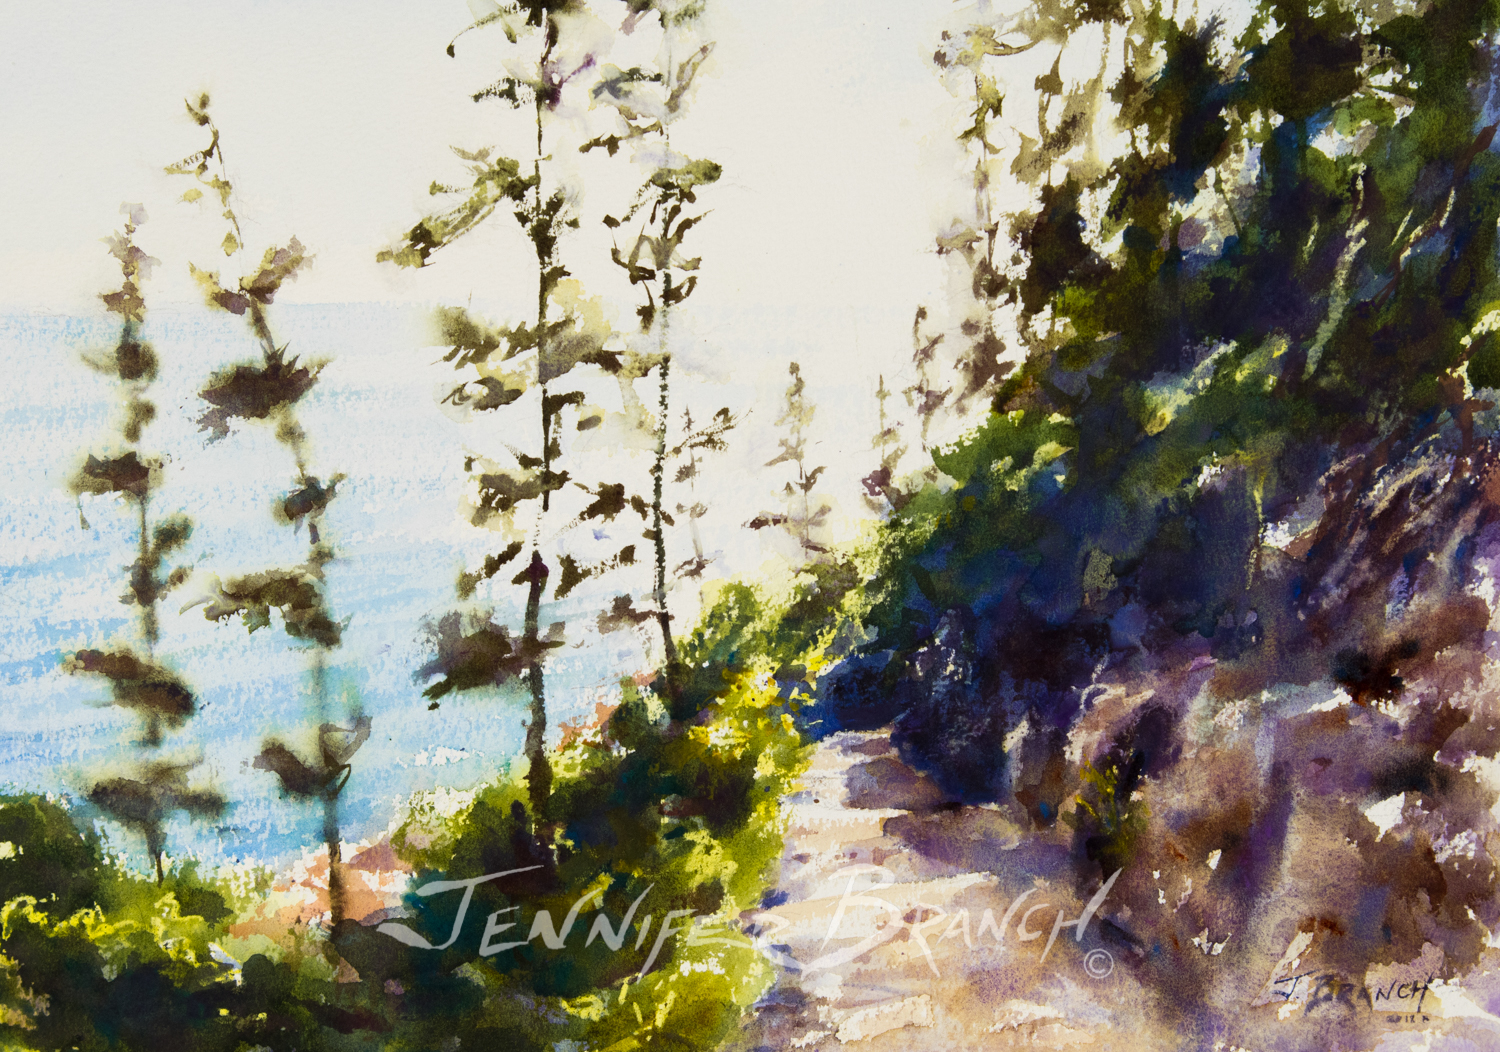 The sun is shining and a beautiful view is at the end of the path. Watercolor painting of the path to Bass Harbor Lighthouse by Jennifer Branch. by Jennifer Branch.